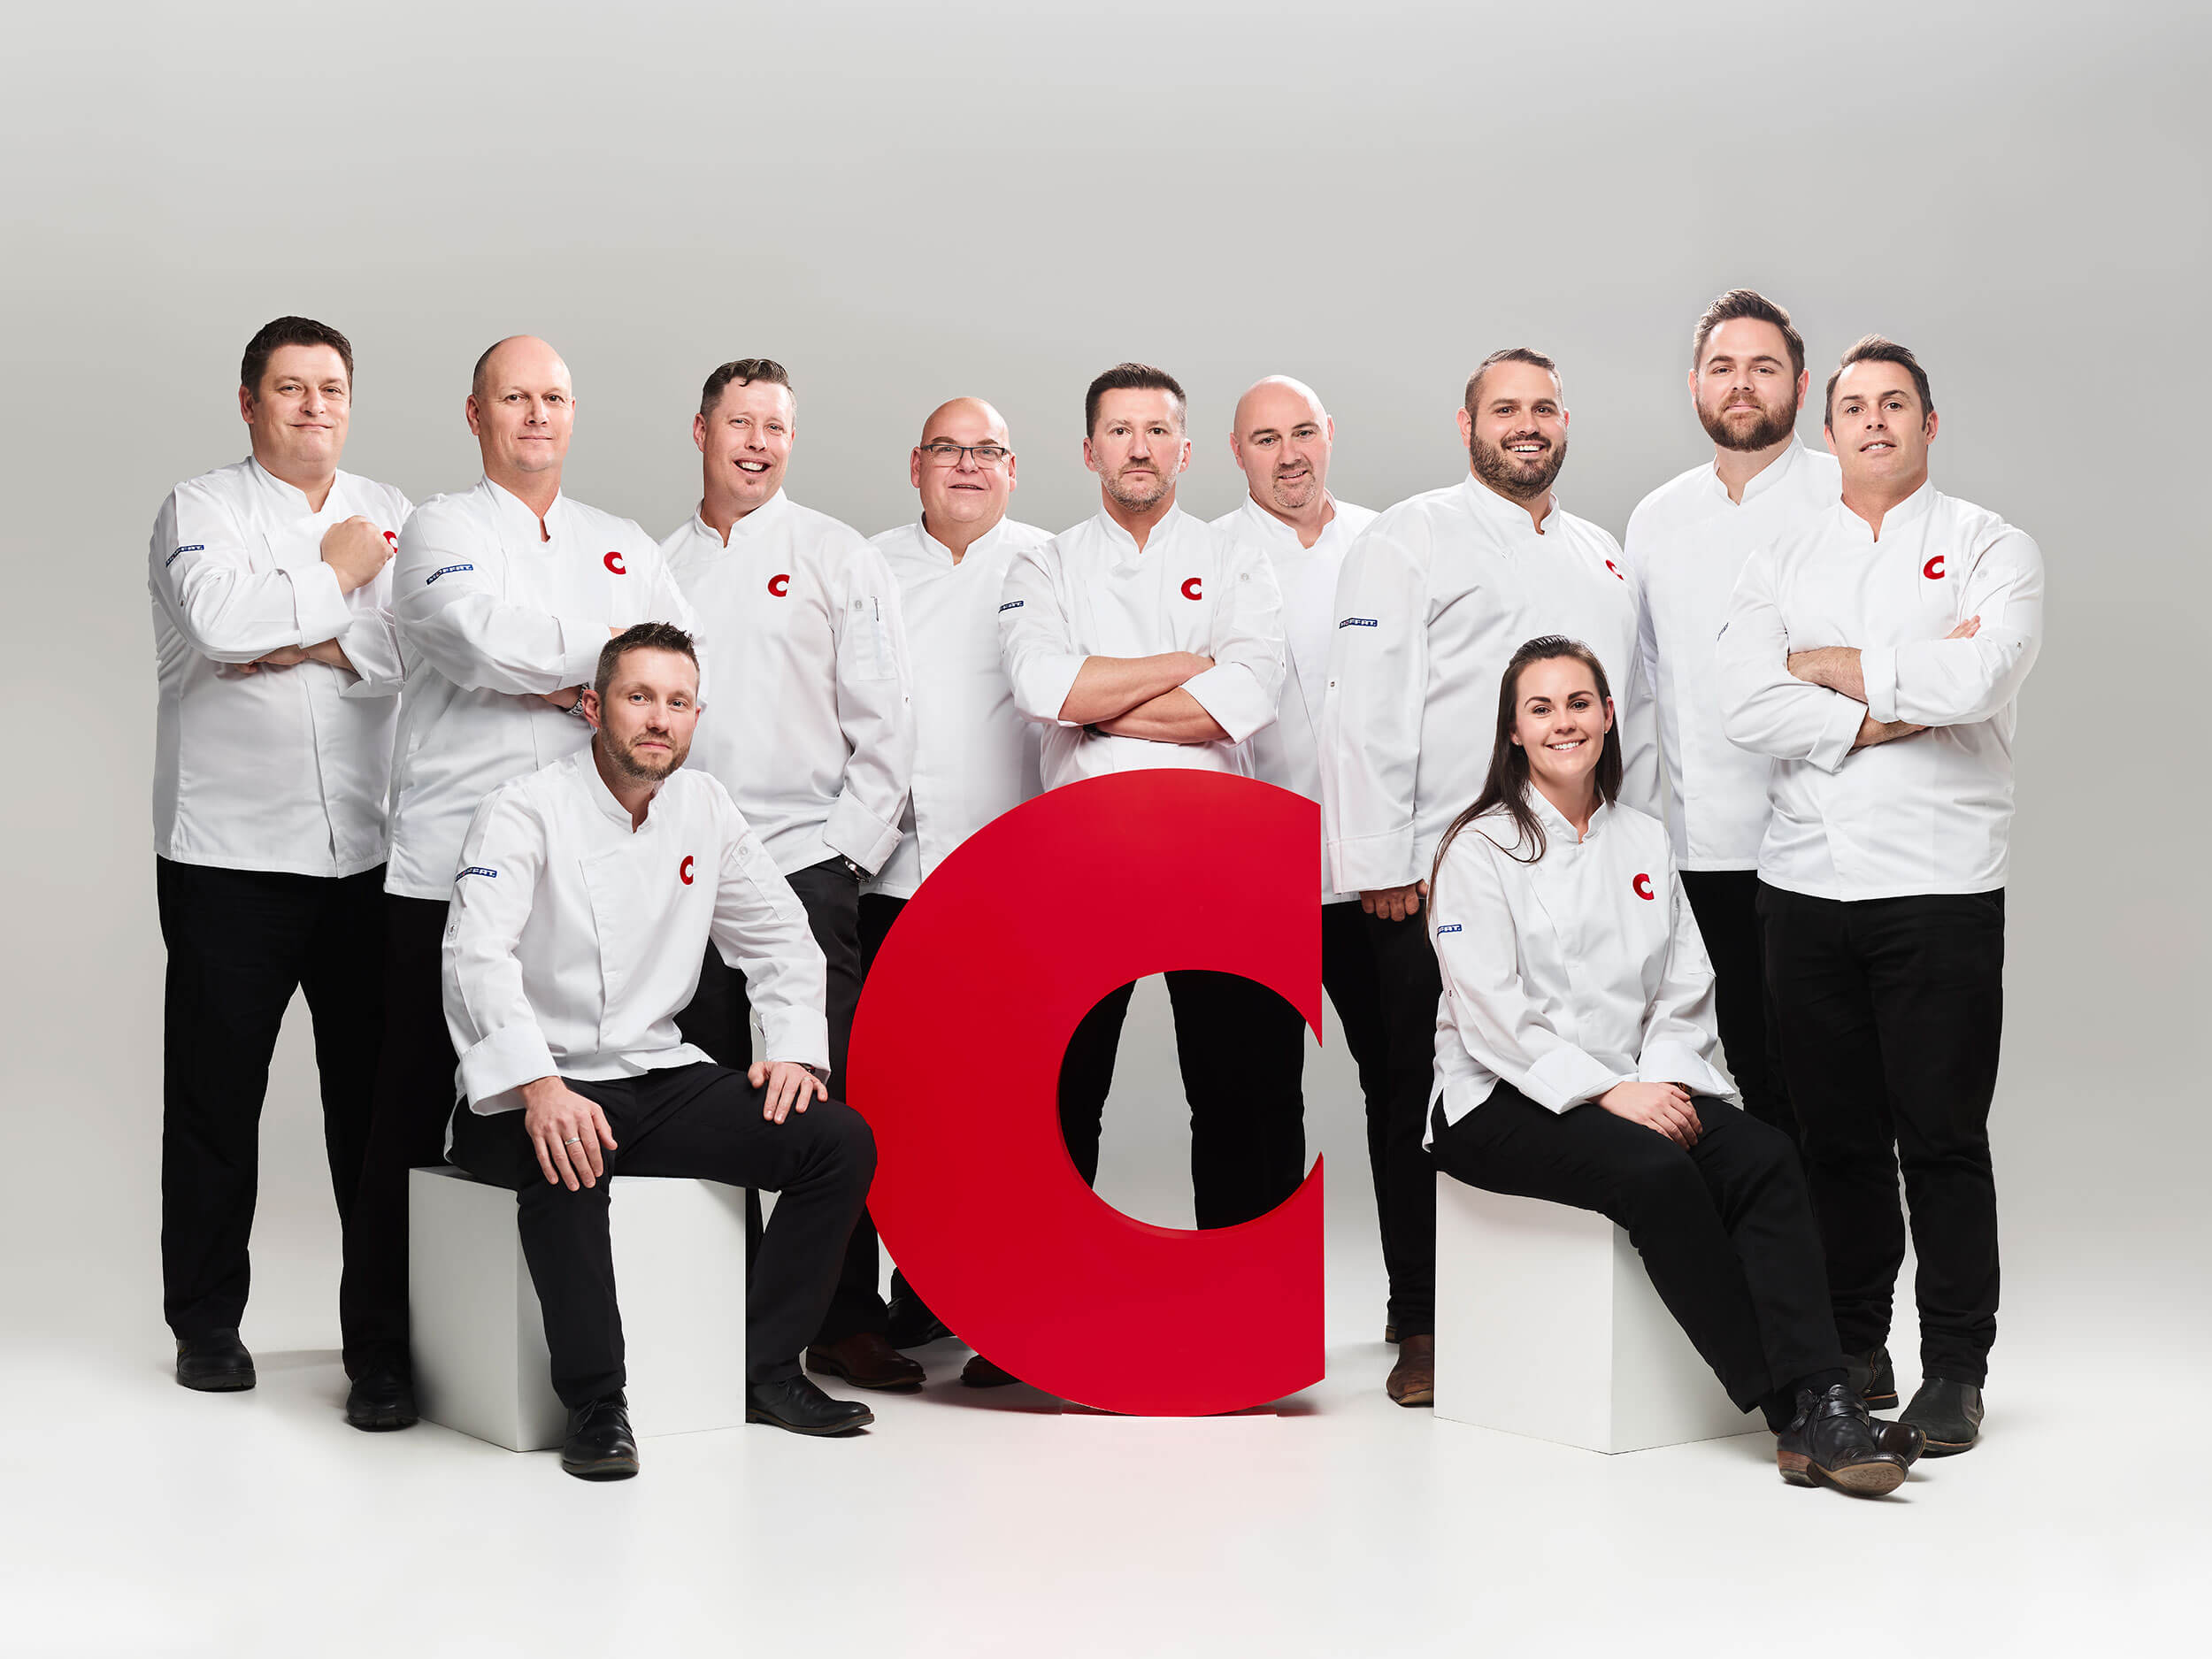 Moffat_Convotherm_Chefs_15017-2